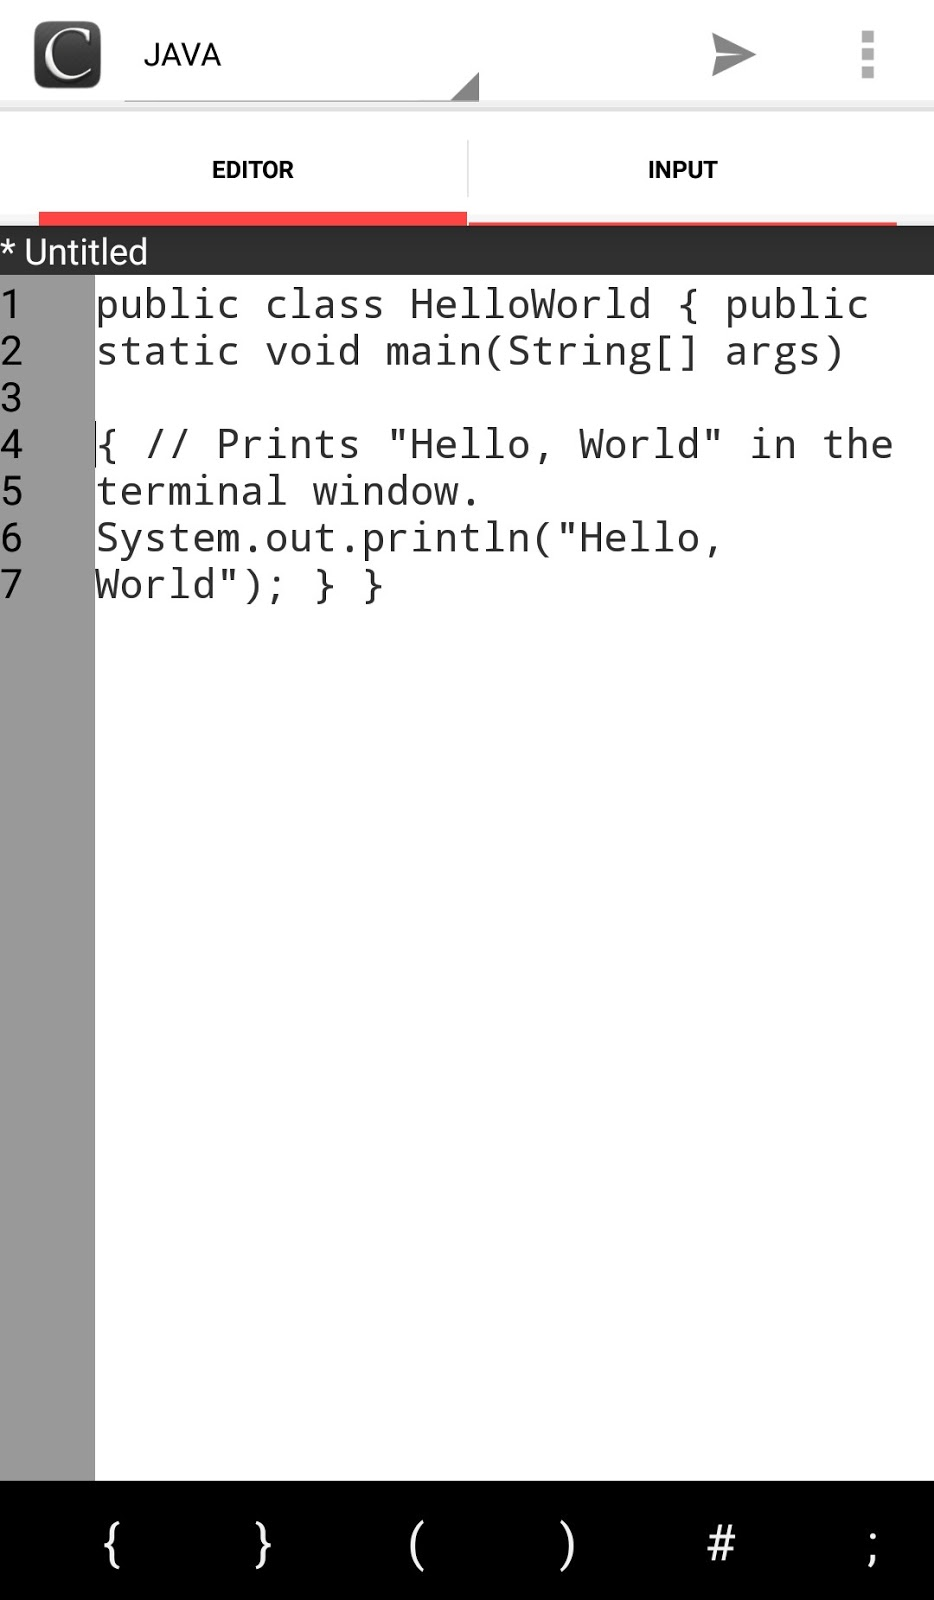 Online Compiler code editor interface